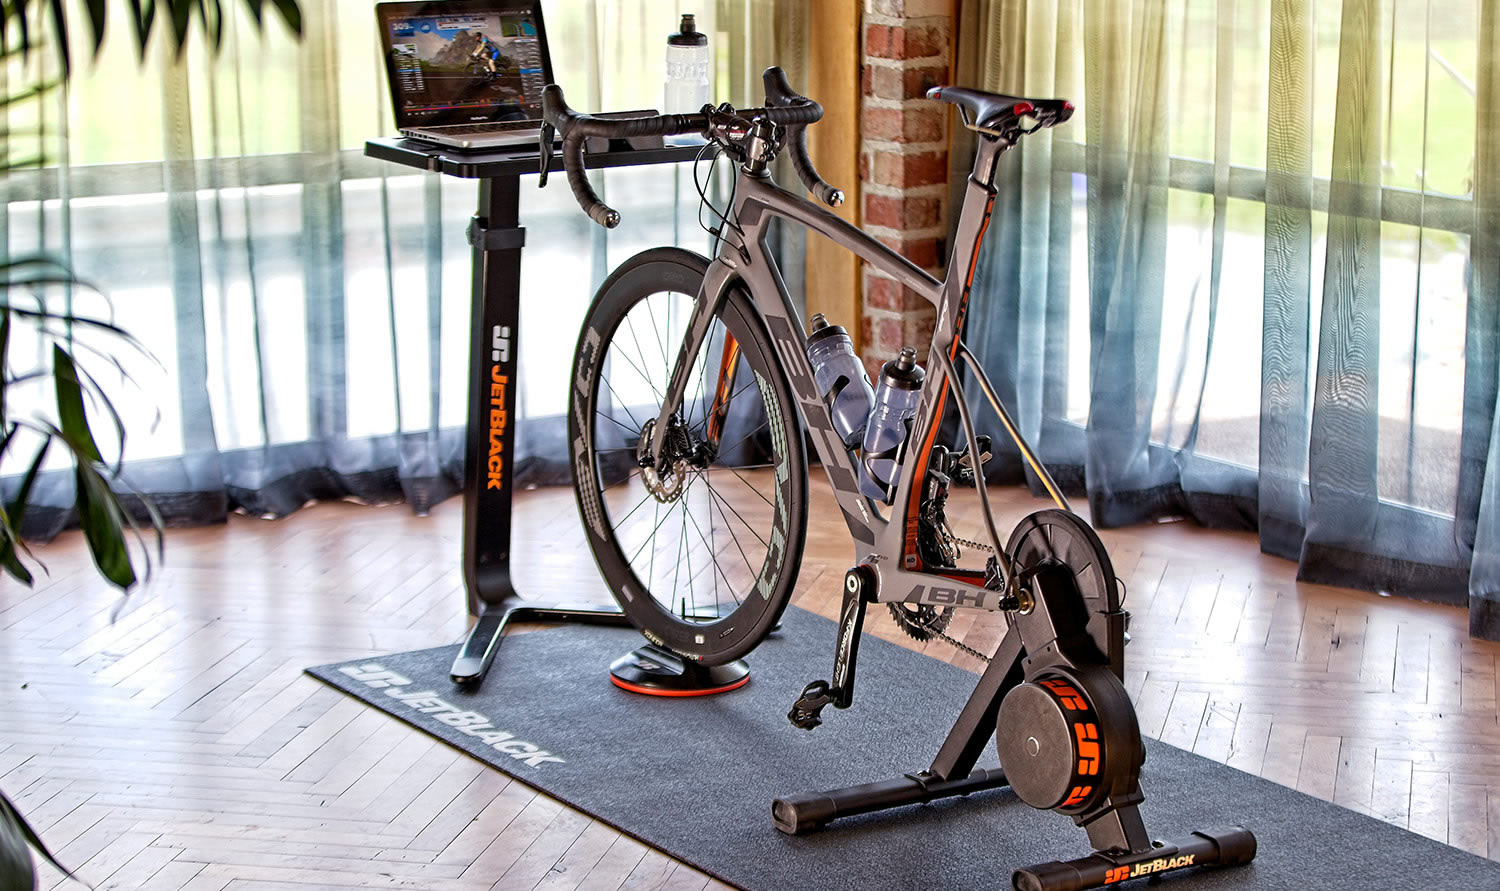 JetBlack Cycling Products - Bike Trainer Bundles All in One